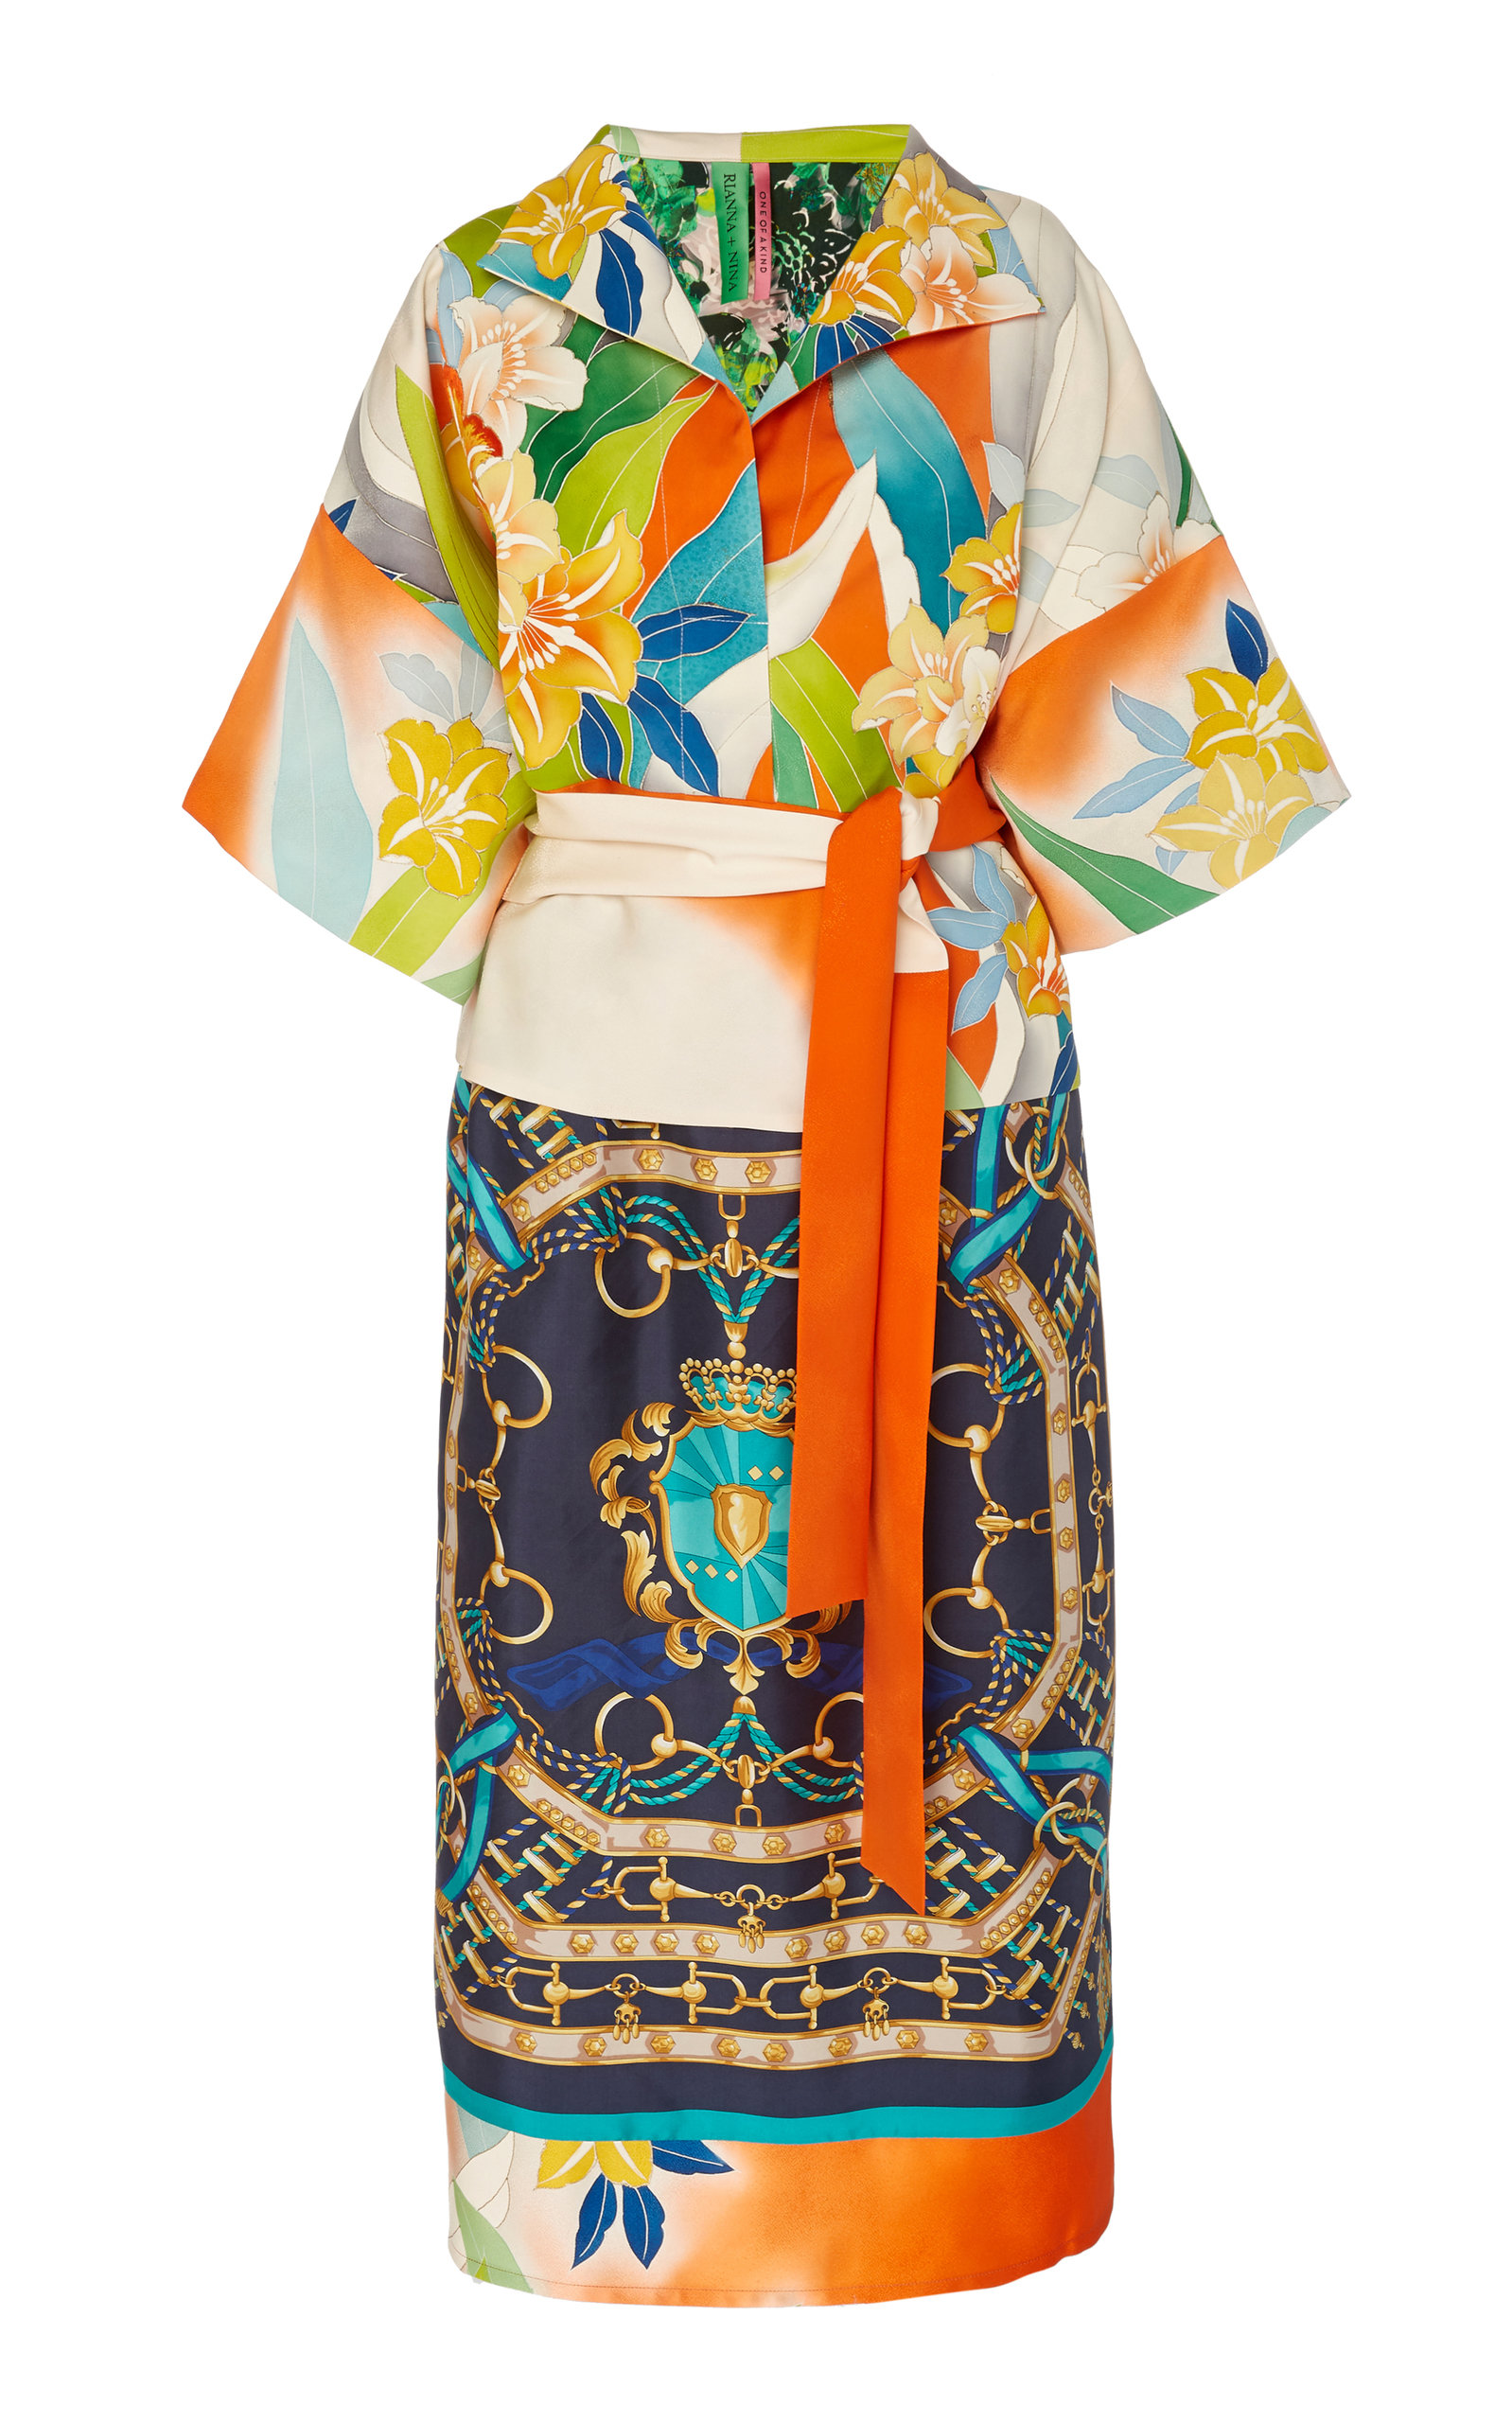 Buy Rianna + Nina Exclusive One Of A Kind Vibrant Silk Dress online, shop Rianna + Nina at the best price